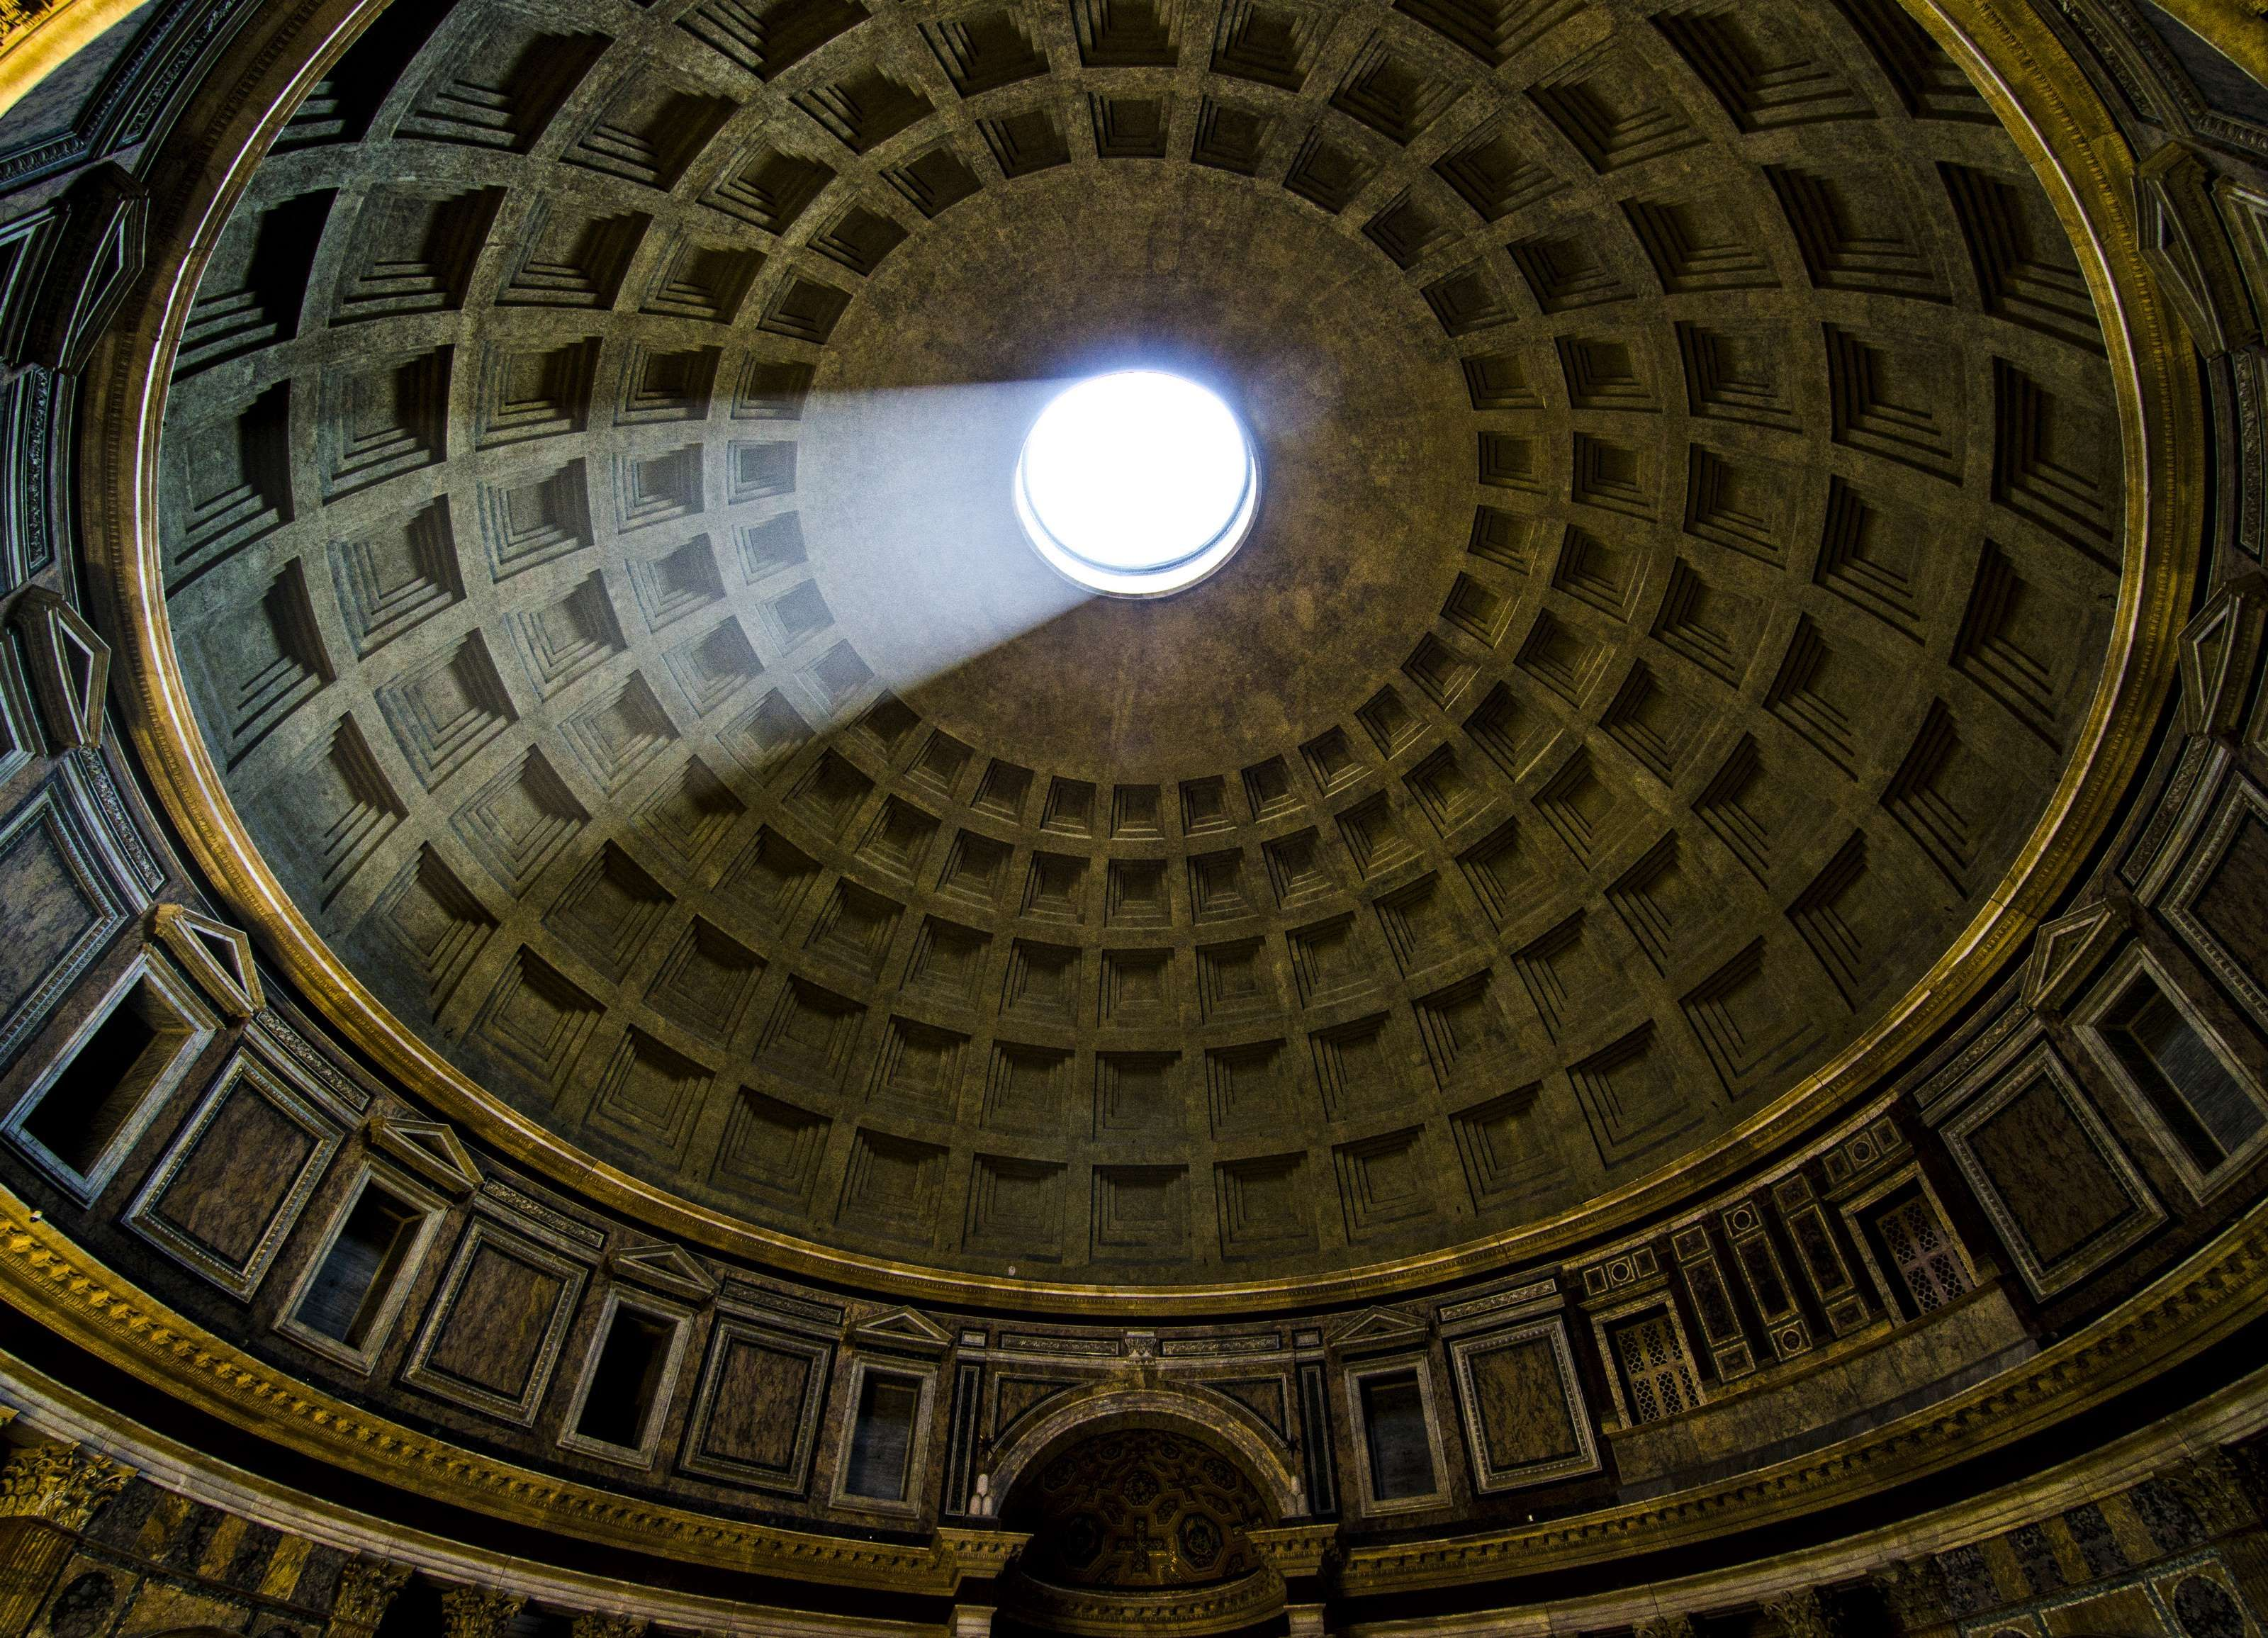 Ancient Rome Ceiling Hole Looking Up Pantheon Roof